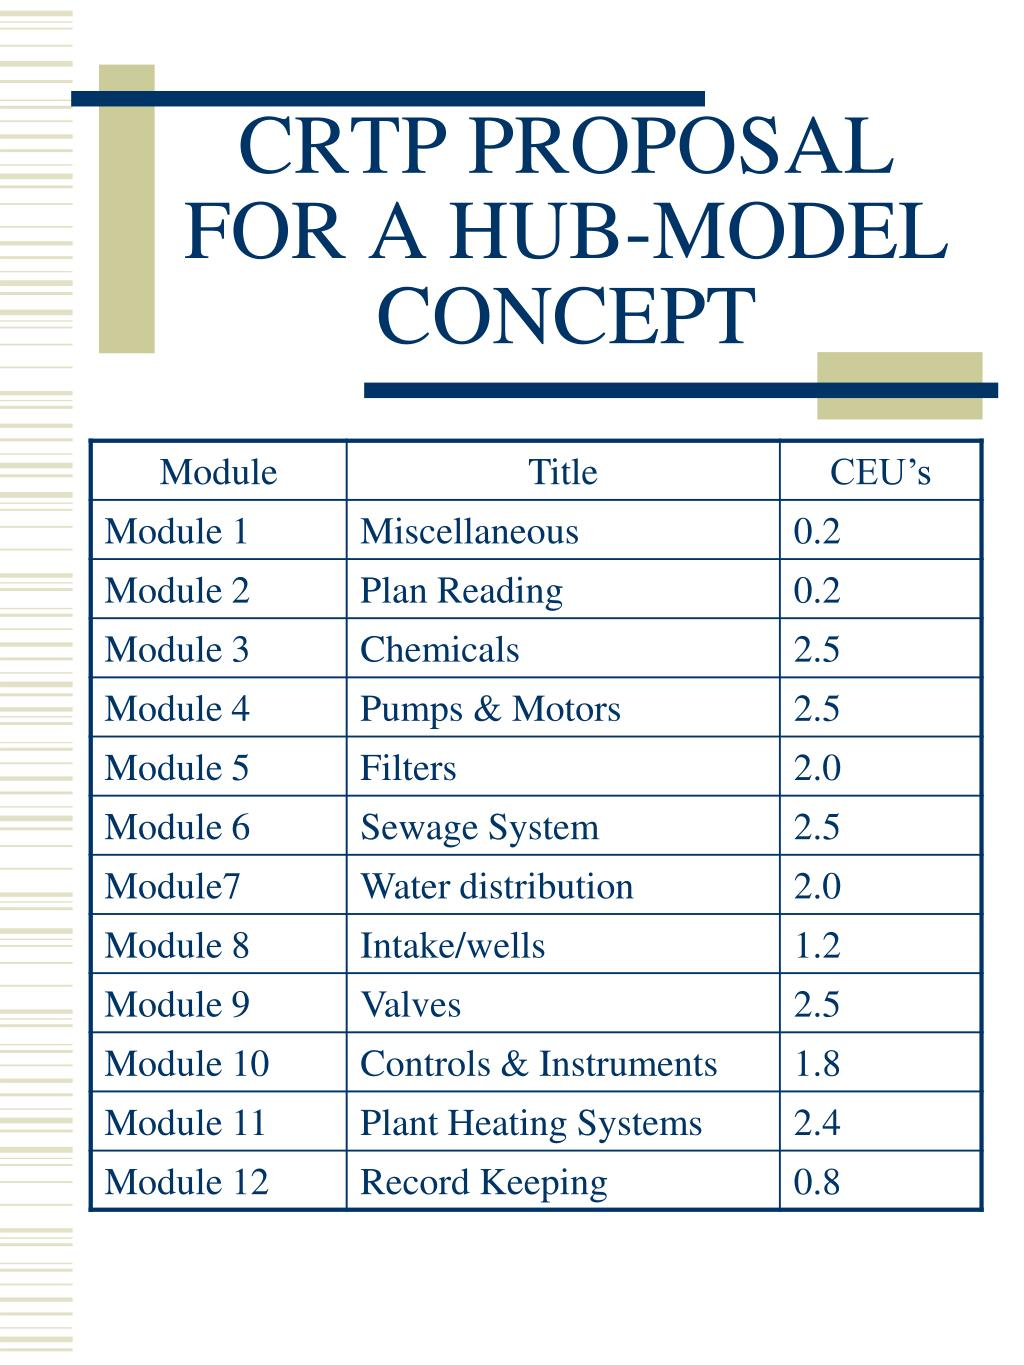 CRTP PROPOSAL FOR A HUB-MODEL CONCEPT